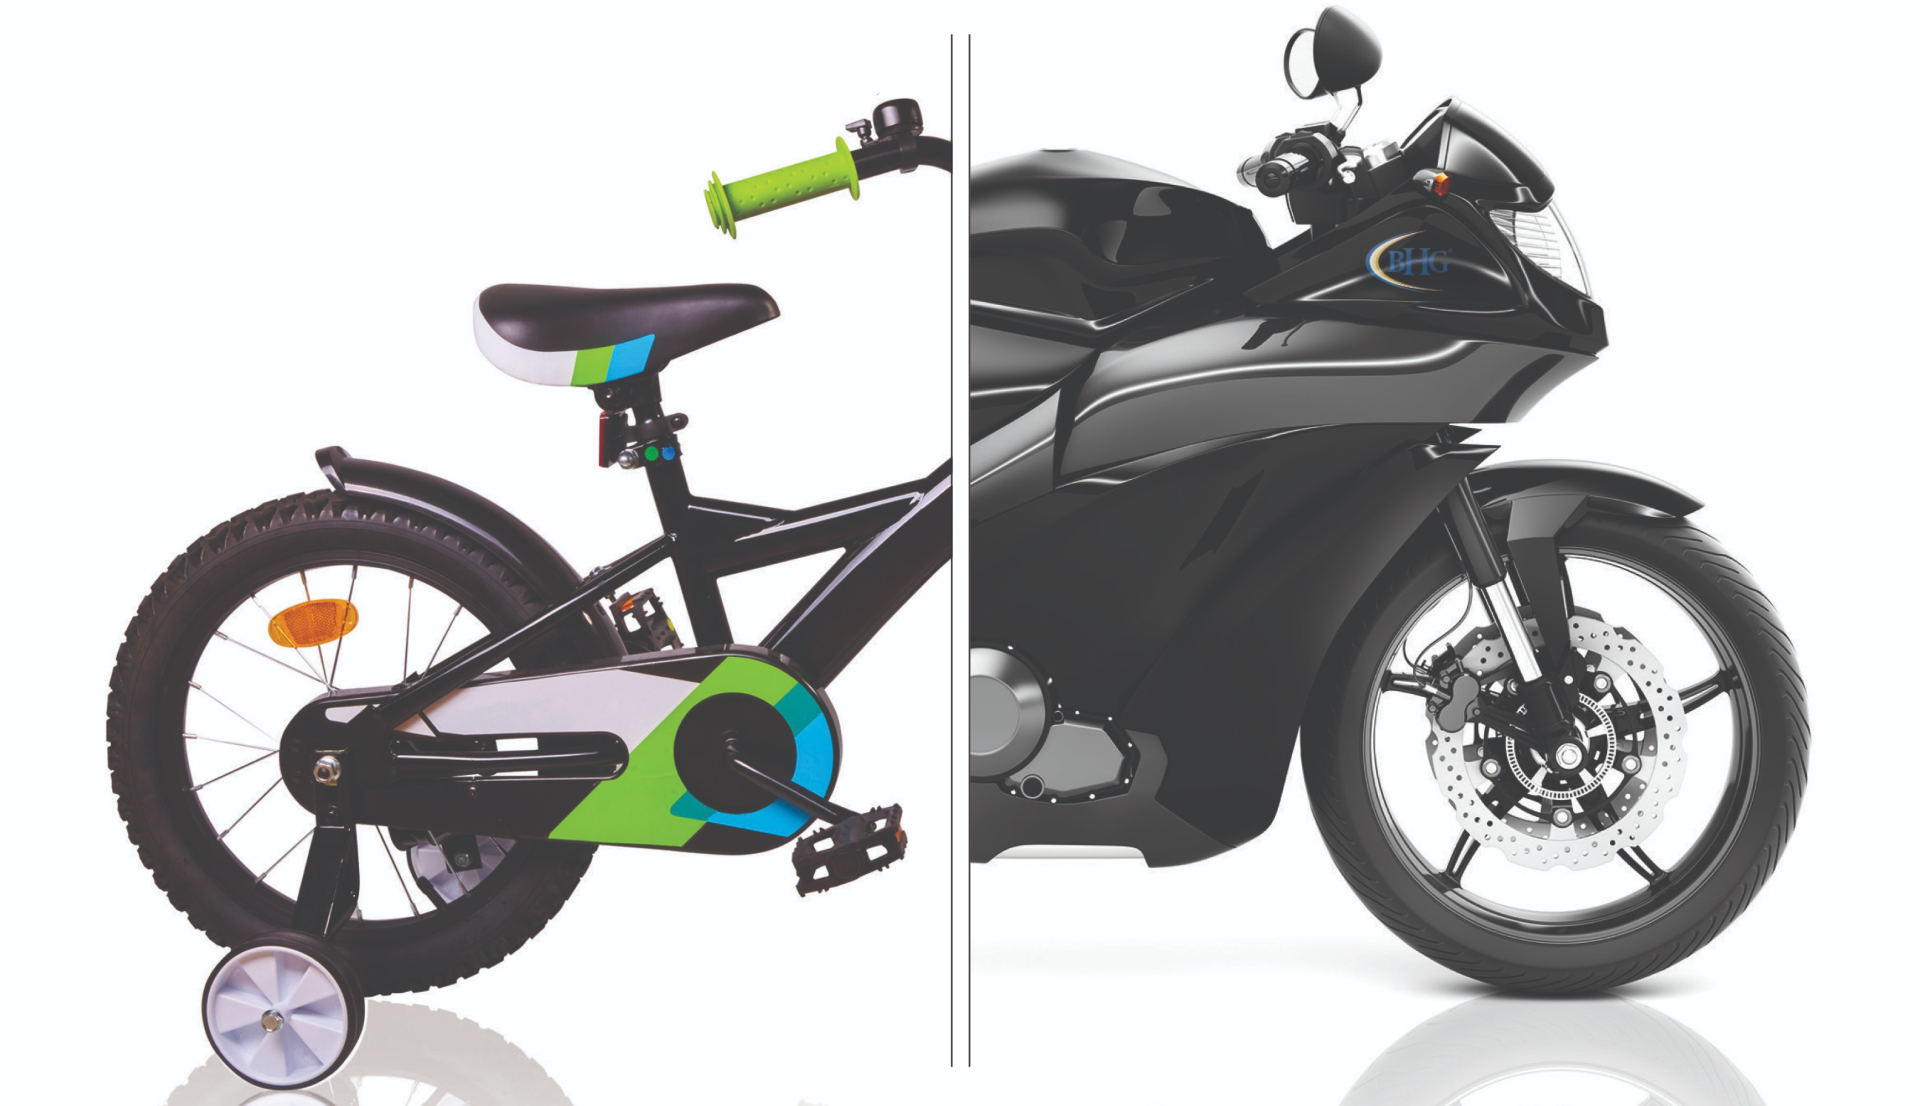 Bike and Motorcycle Transformations Campaign